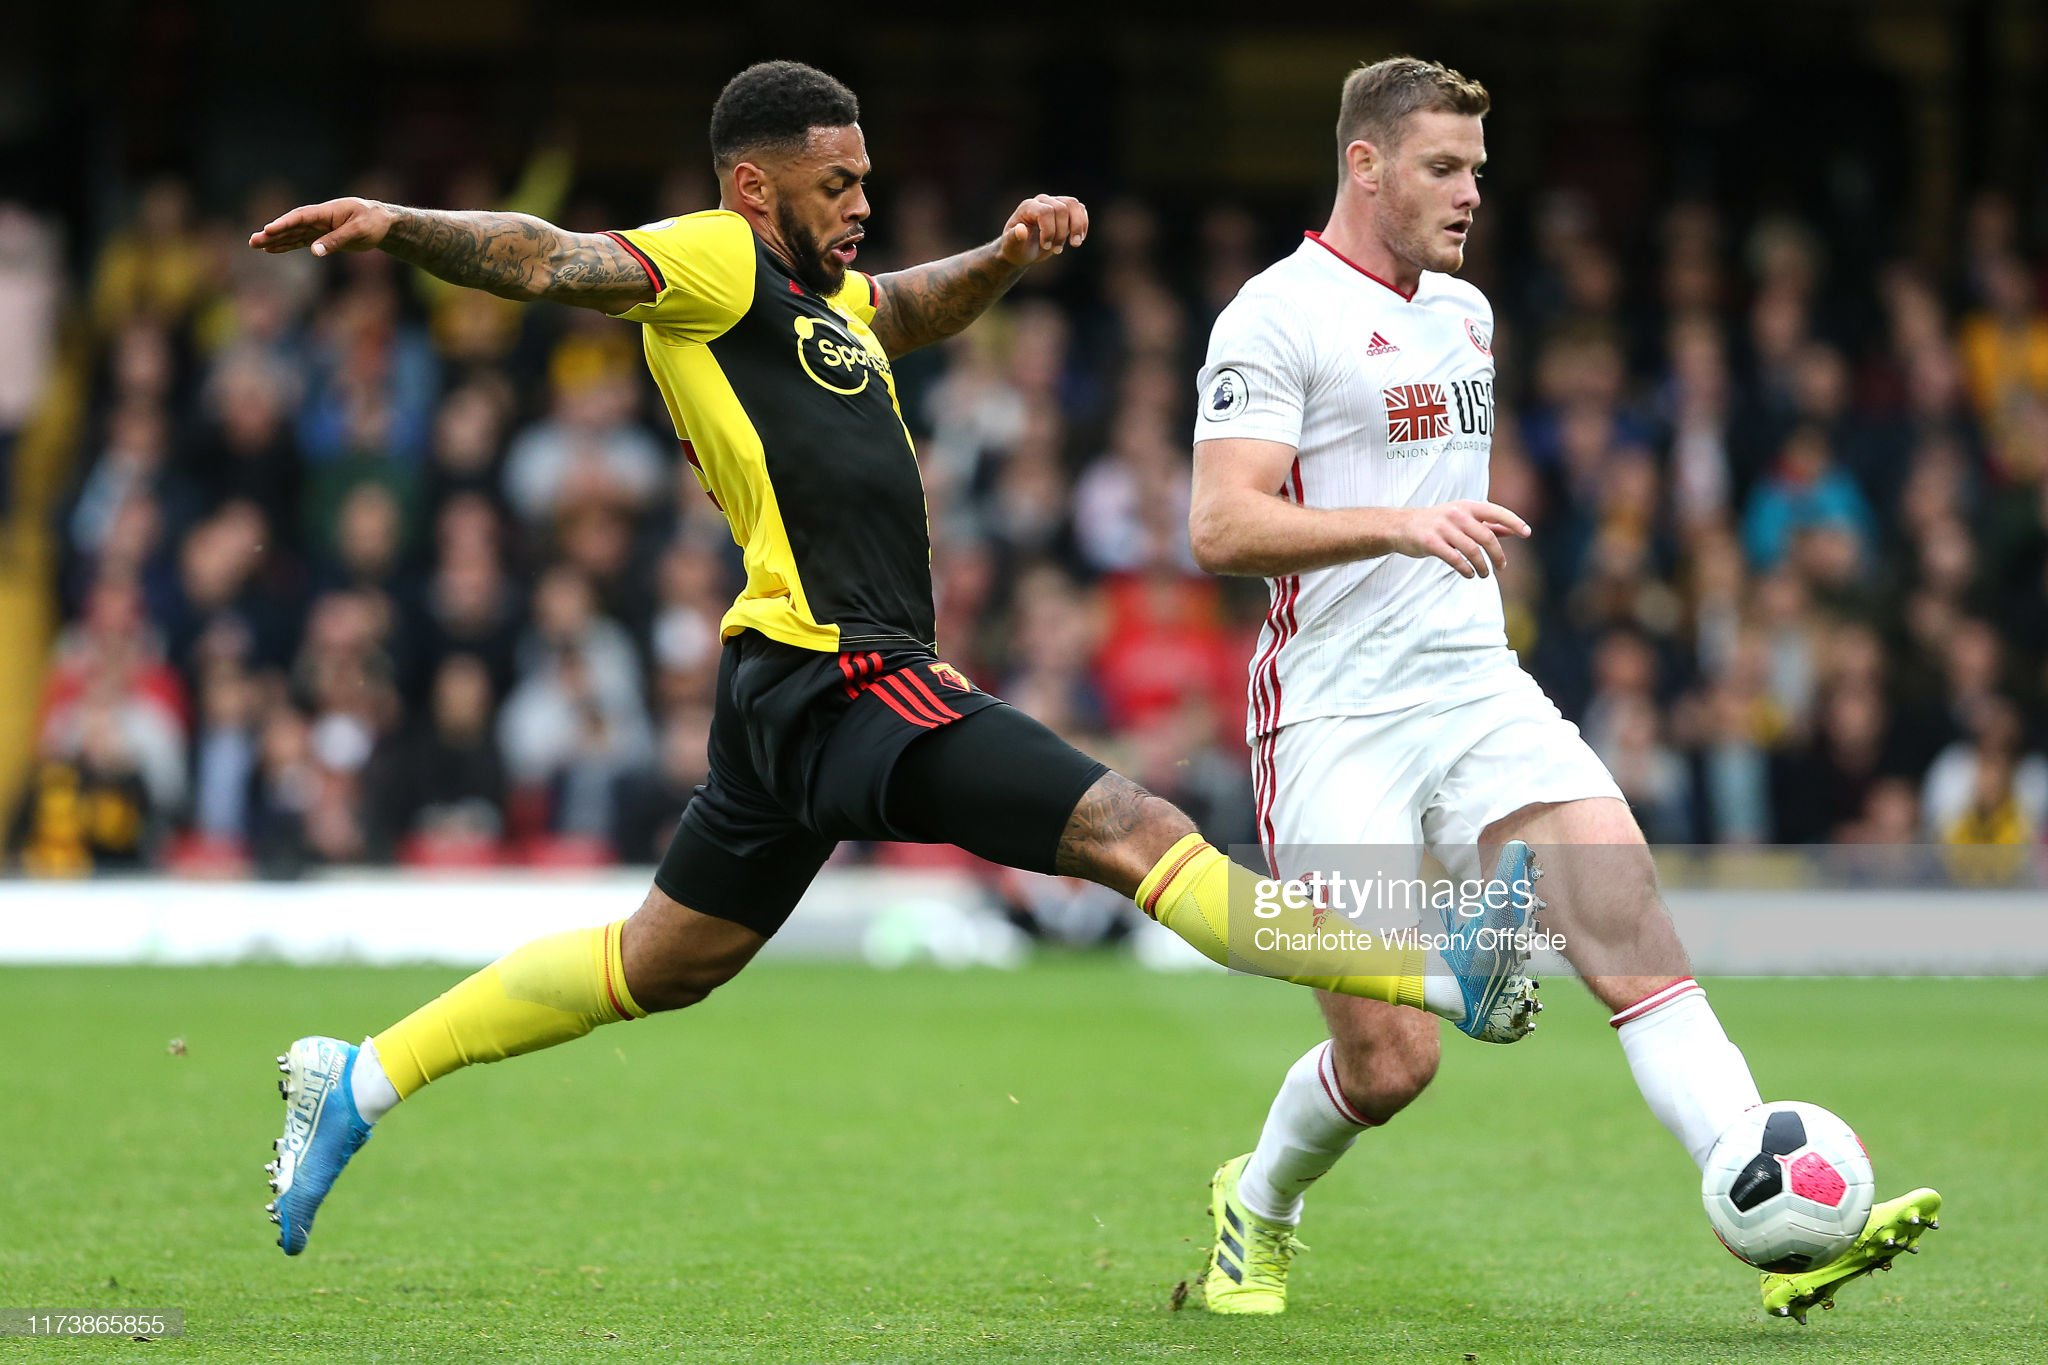 Sheffield United v Watford preview, prediction and odds